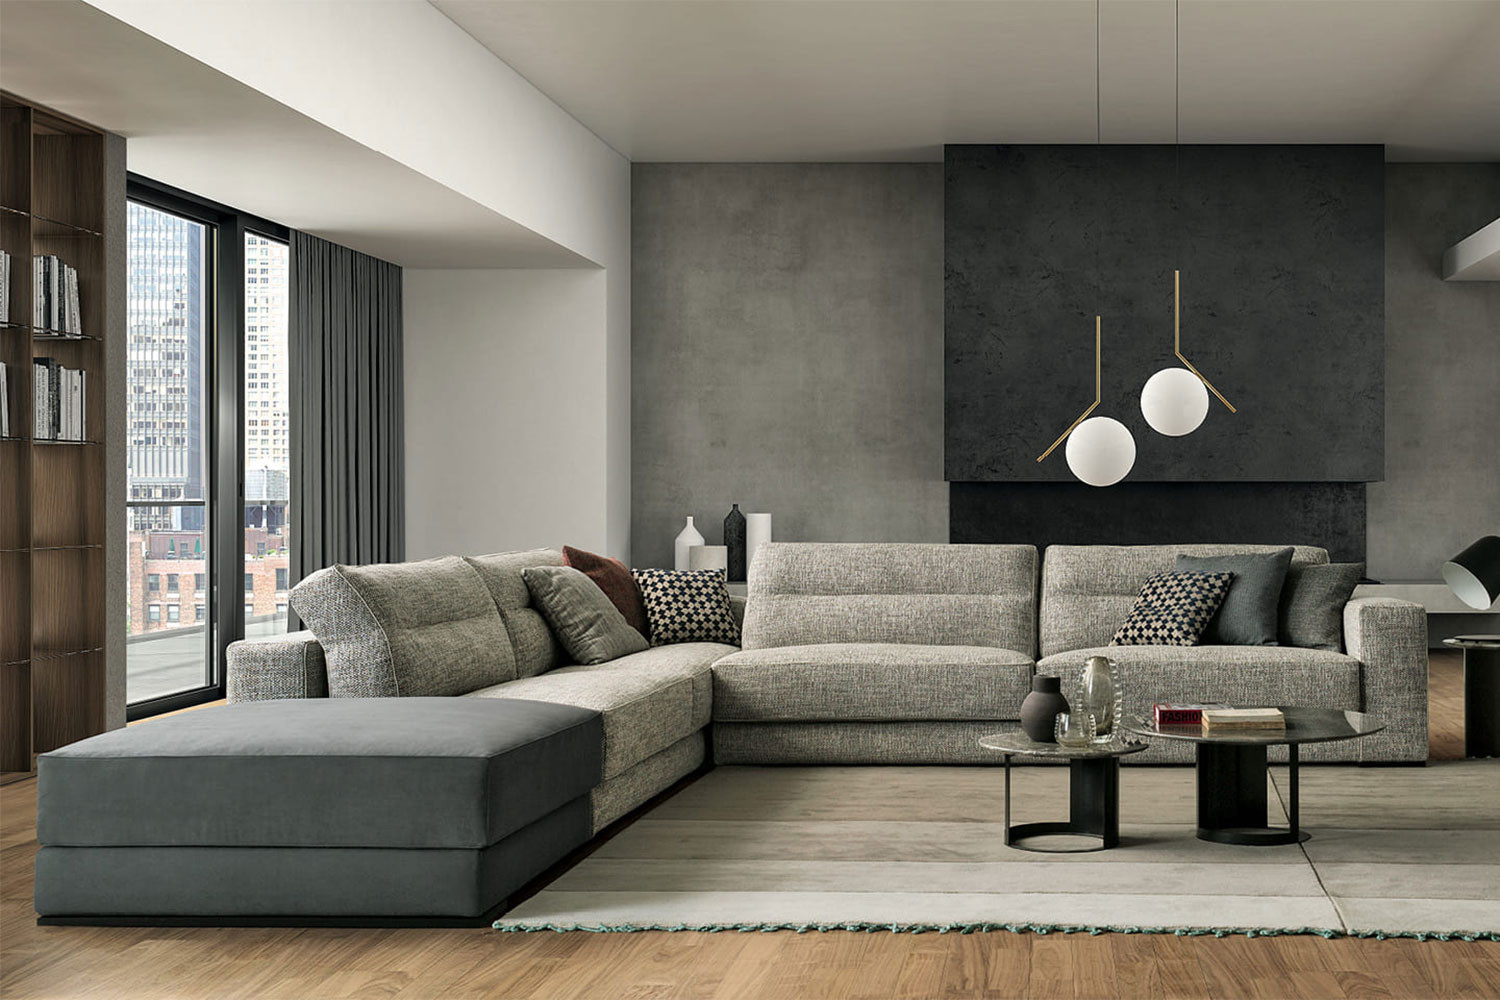 Comfortable sectional sofa with feather loose cushions and ergonomic back